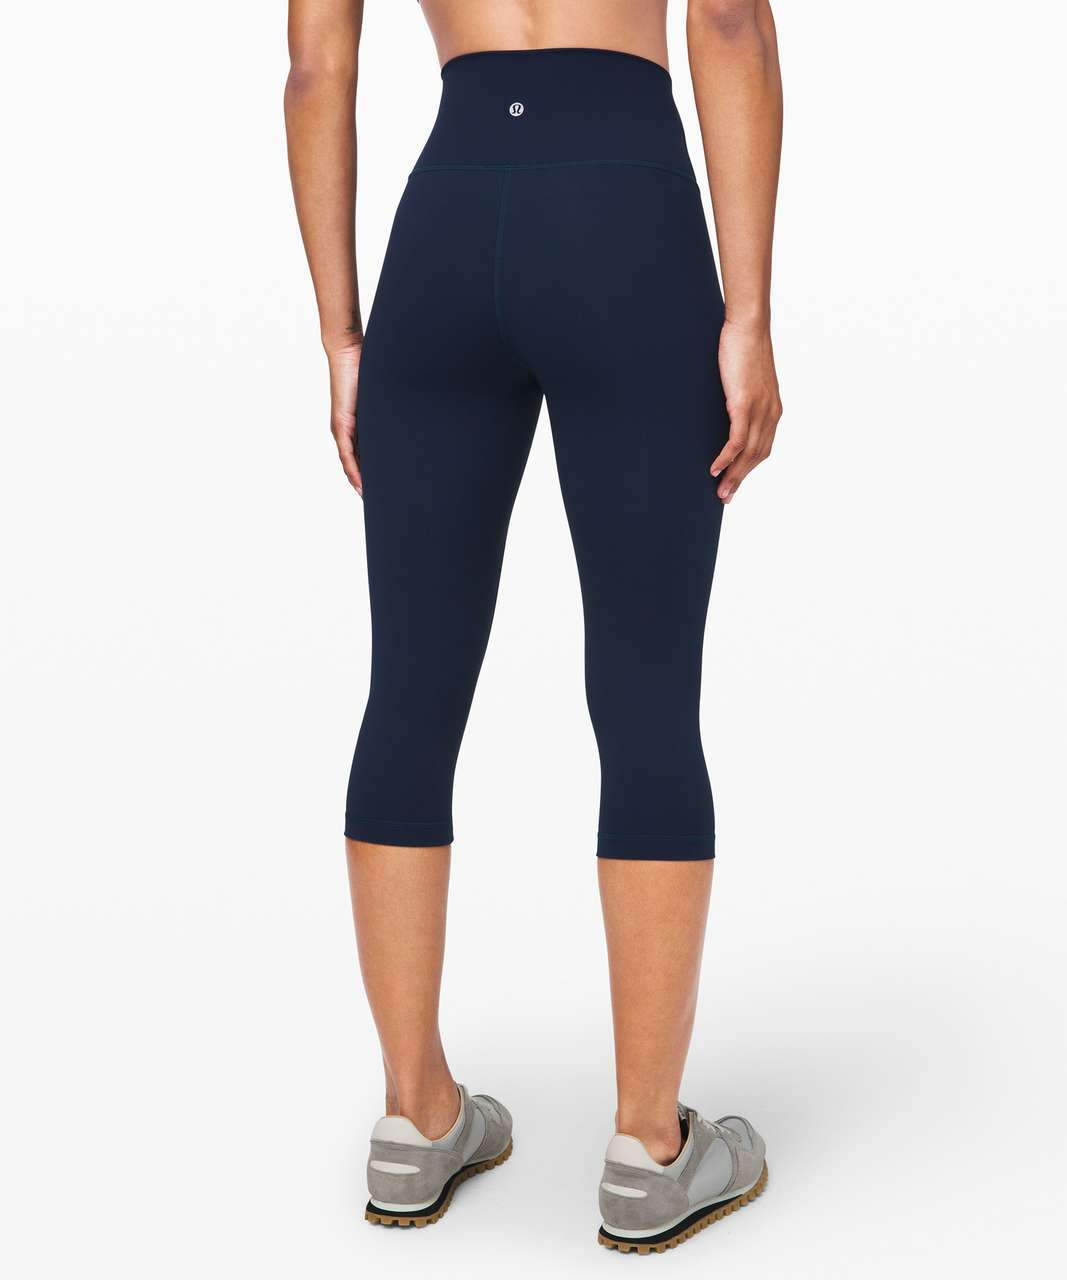 "Lululemon Wunder Under High-Rise 1/2 Tight Full-On Luxtreme 17"" - True Navy"